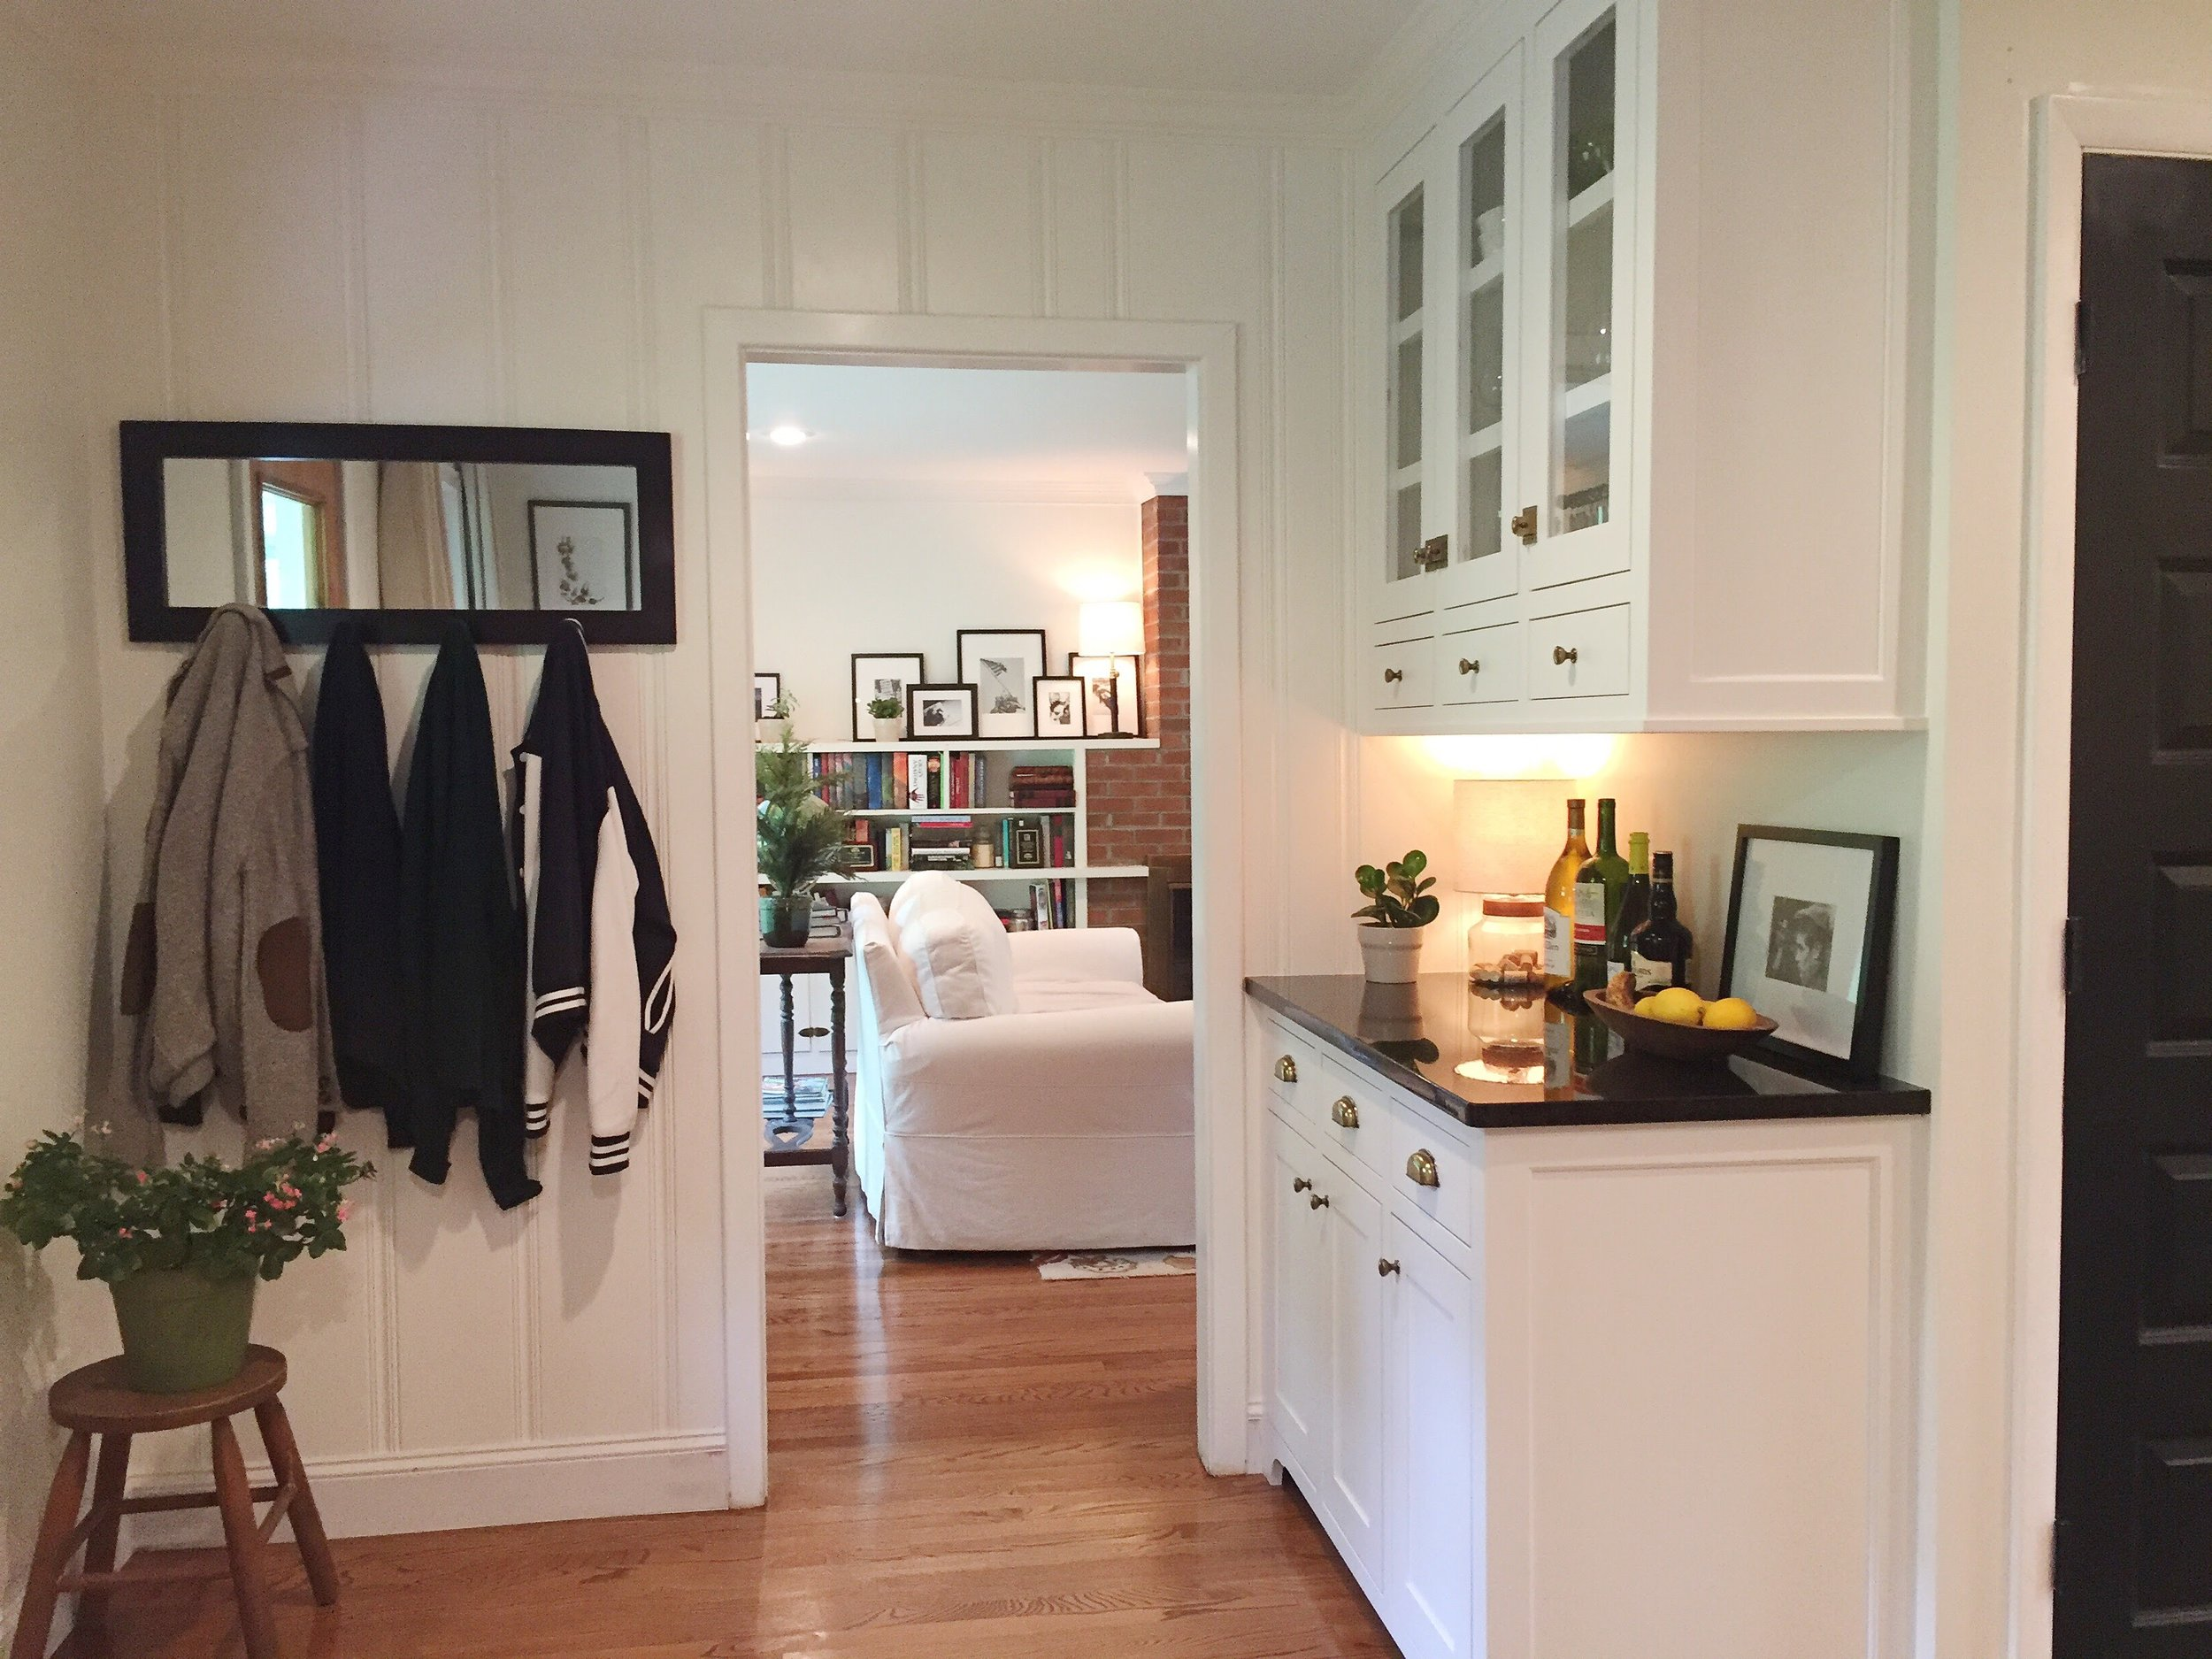 Kitchen/laundry nook after